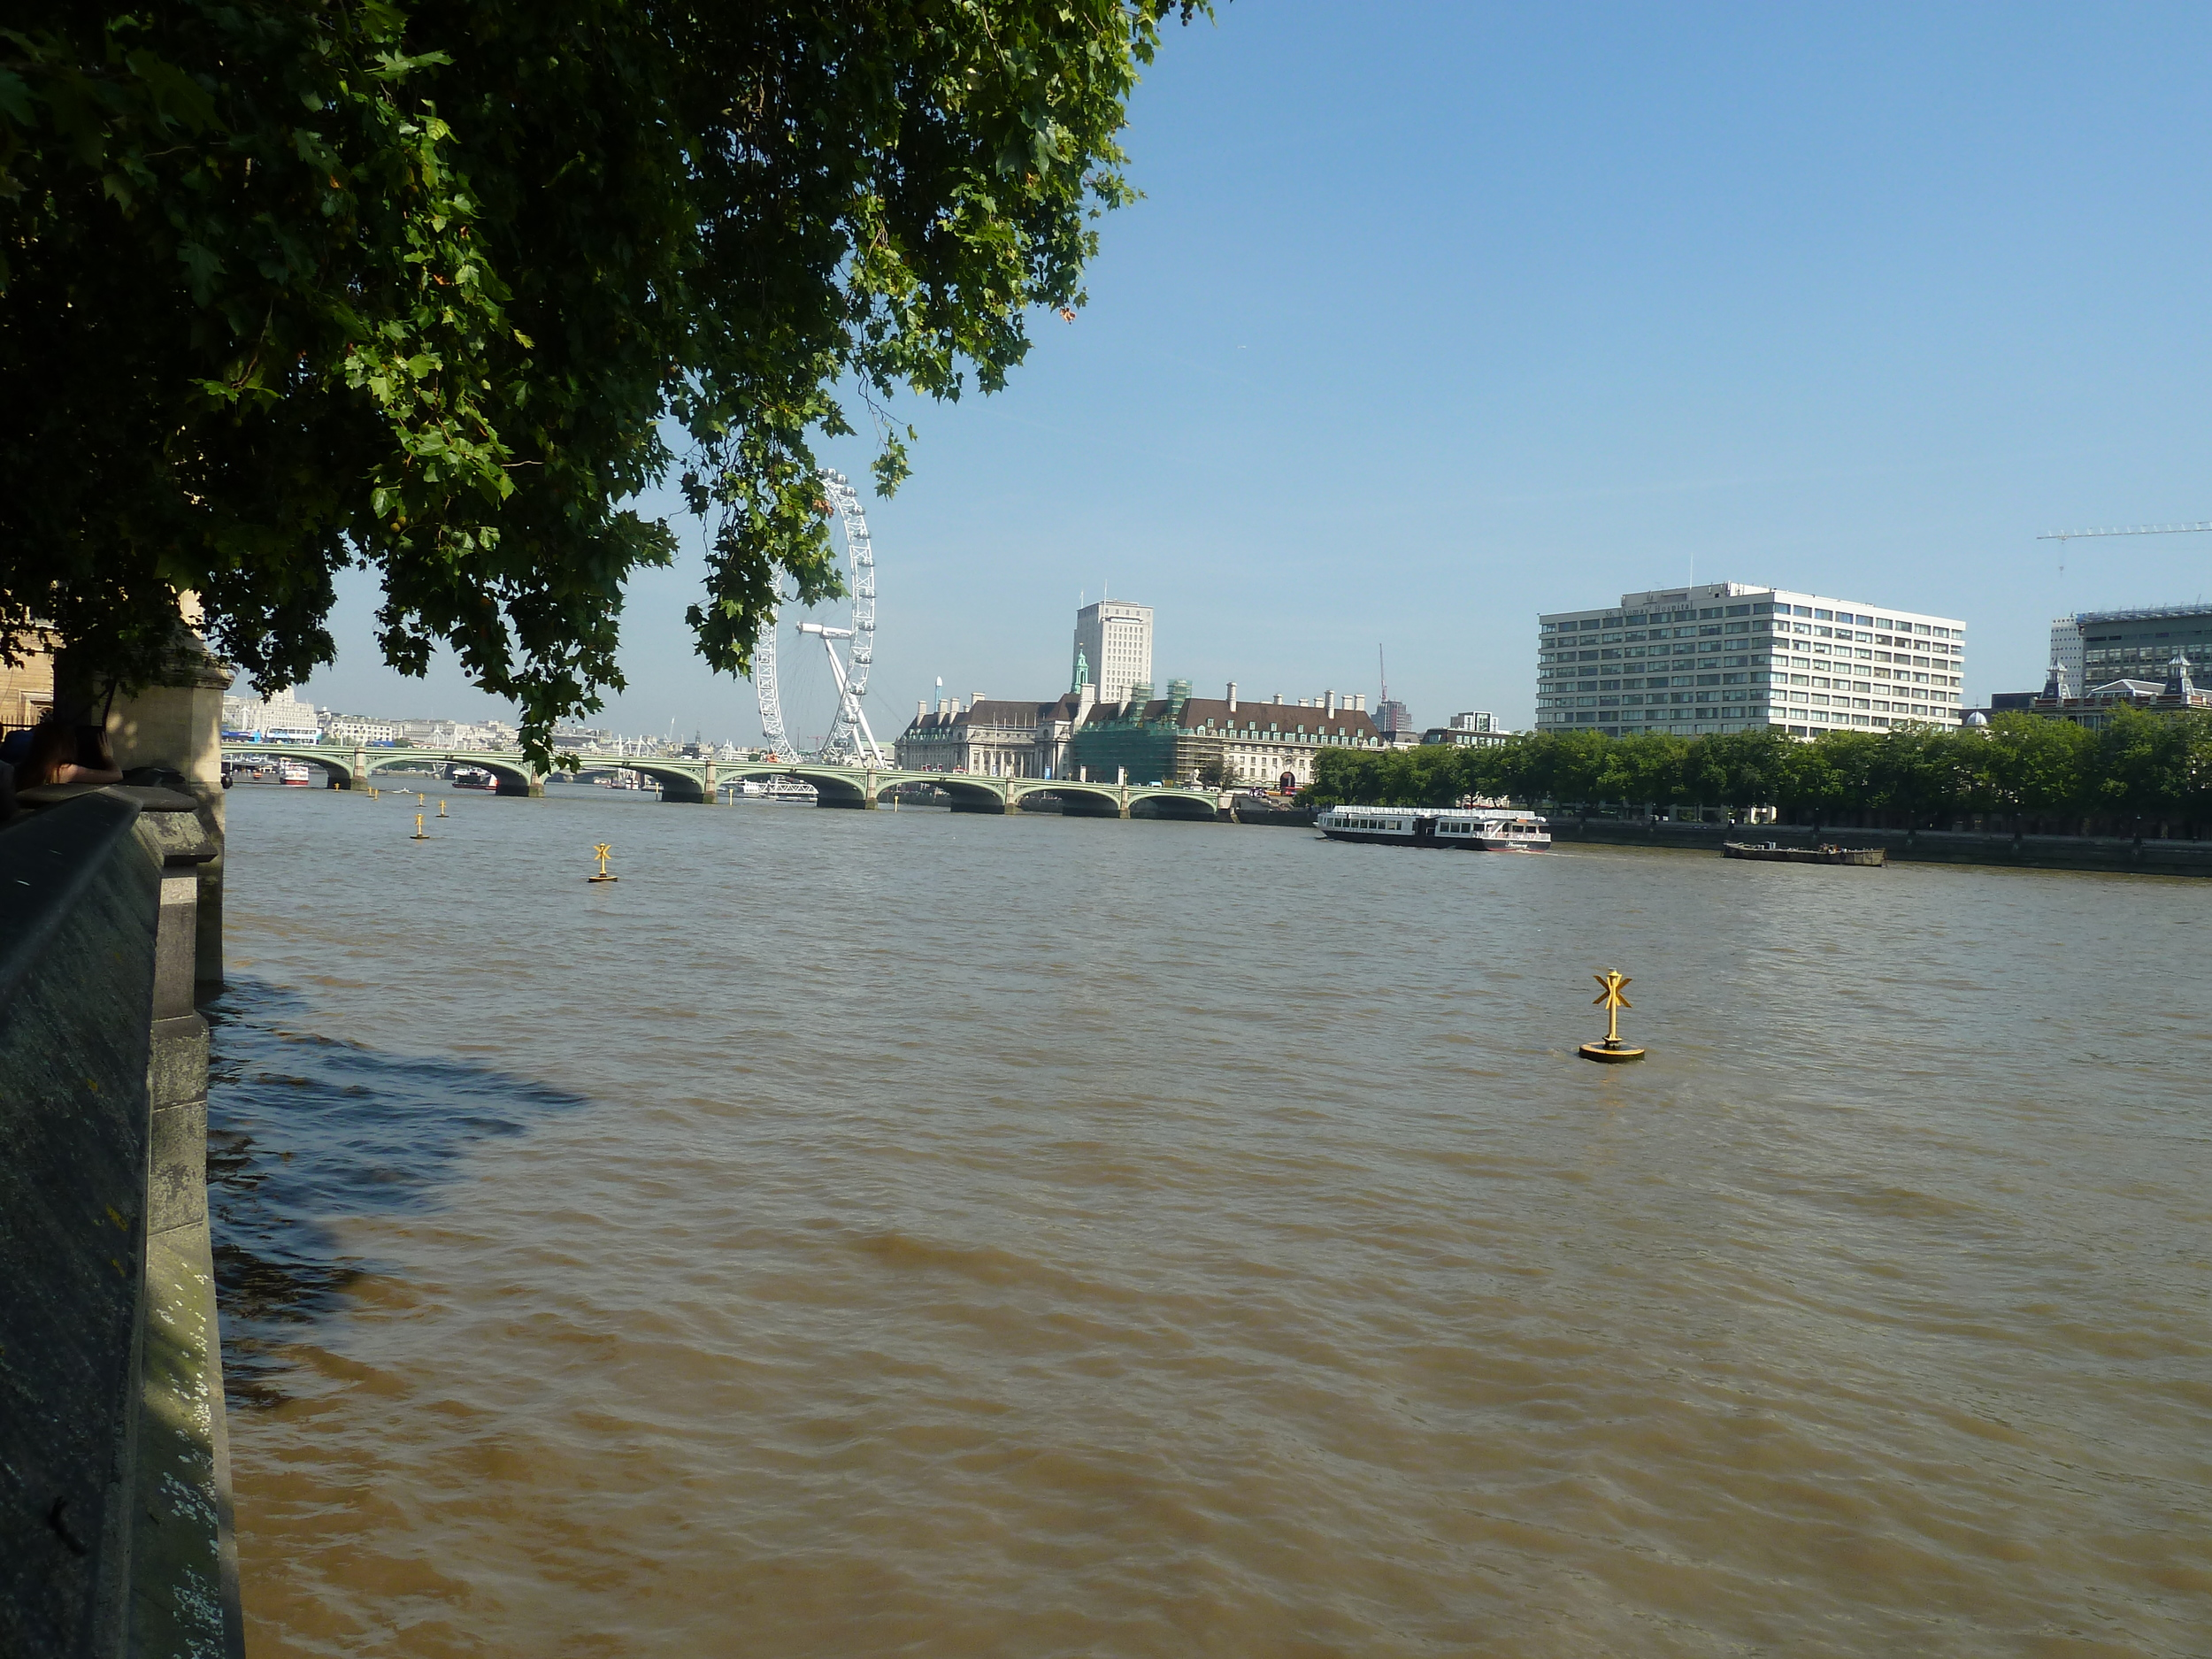 The Thames from Victoria Tower Gardens